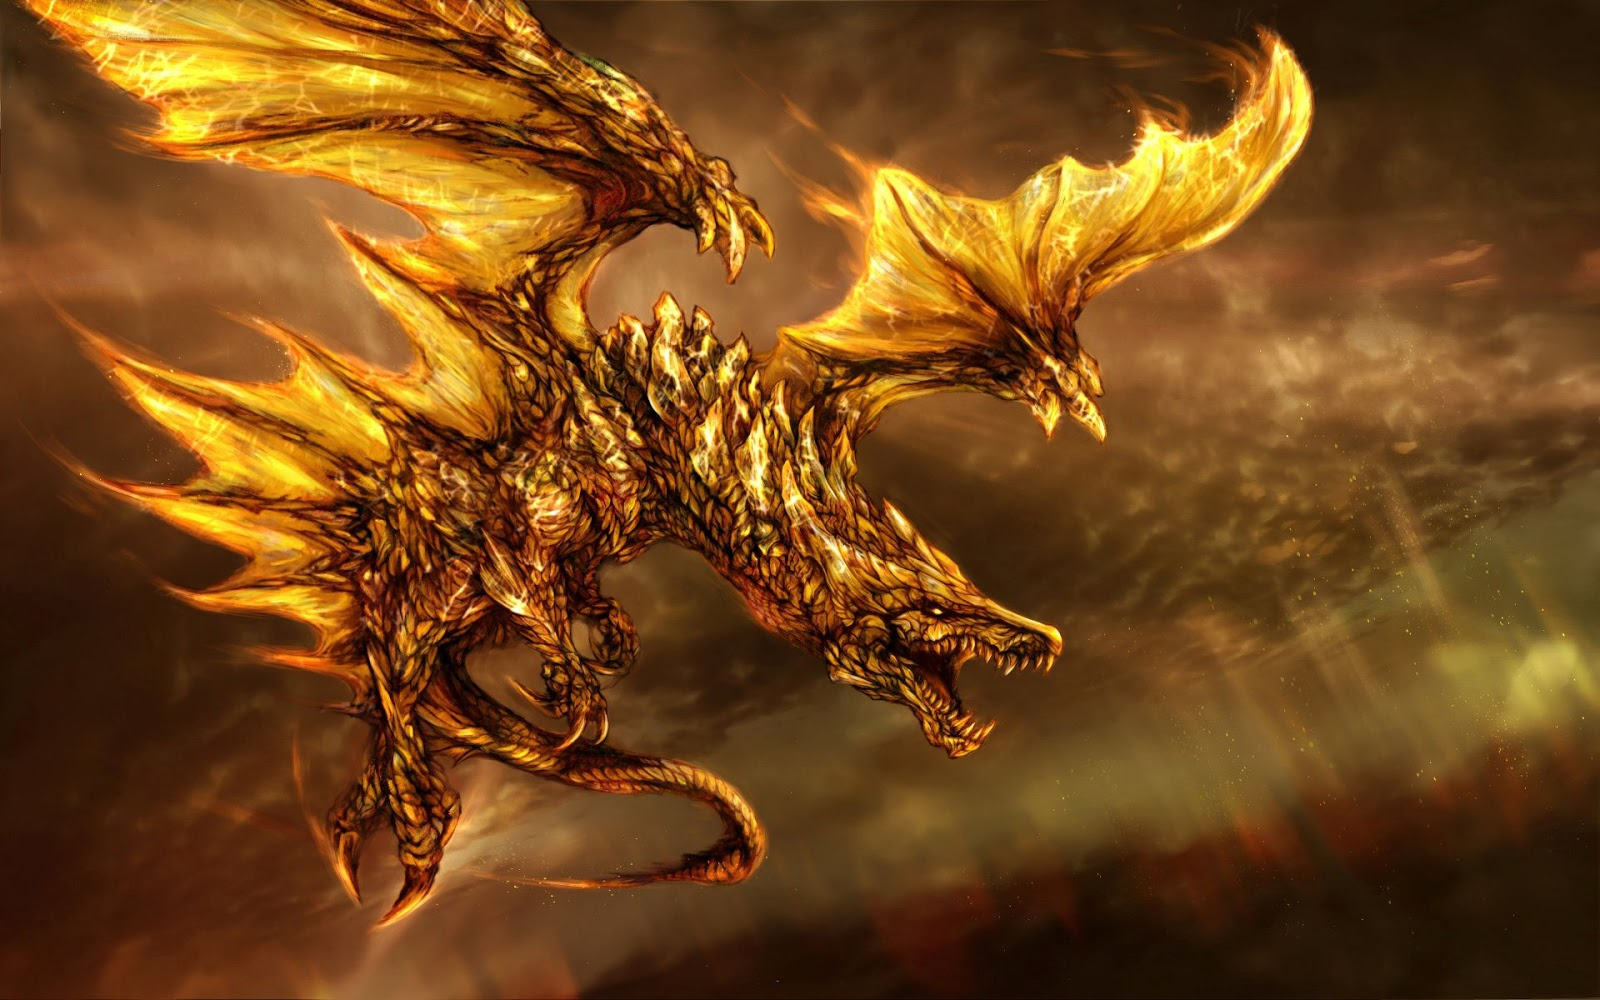 Dragon Hd Wallpapers HD Wallpapers Download Free Images Wallpaper [1000image.com]